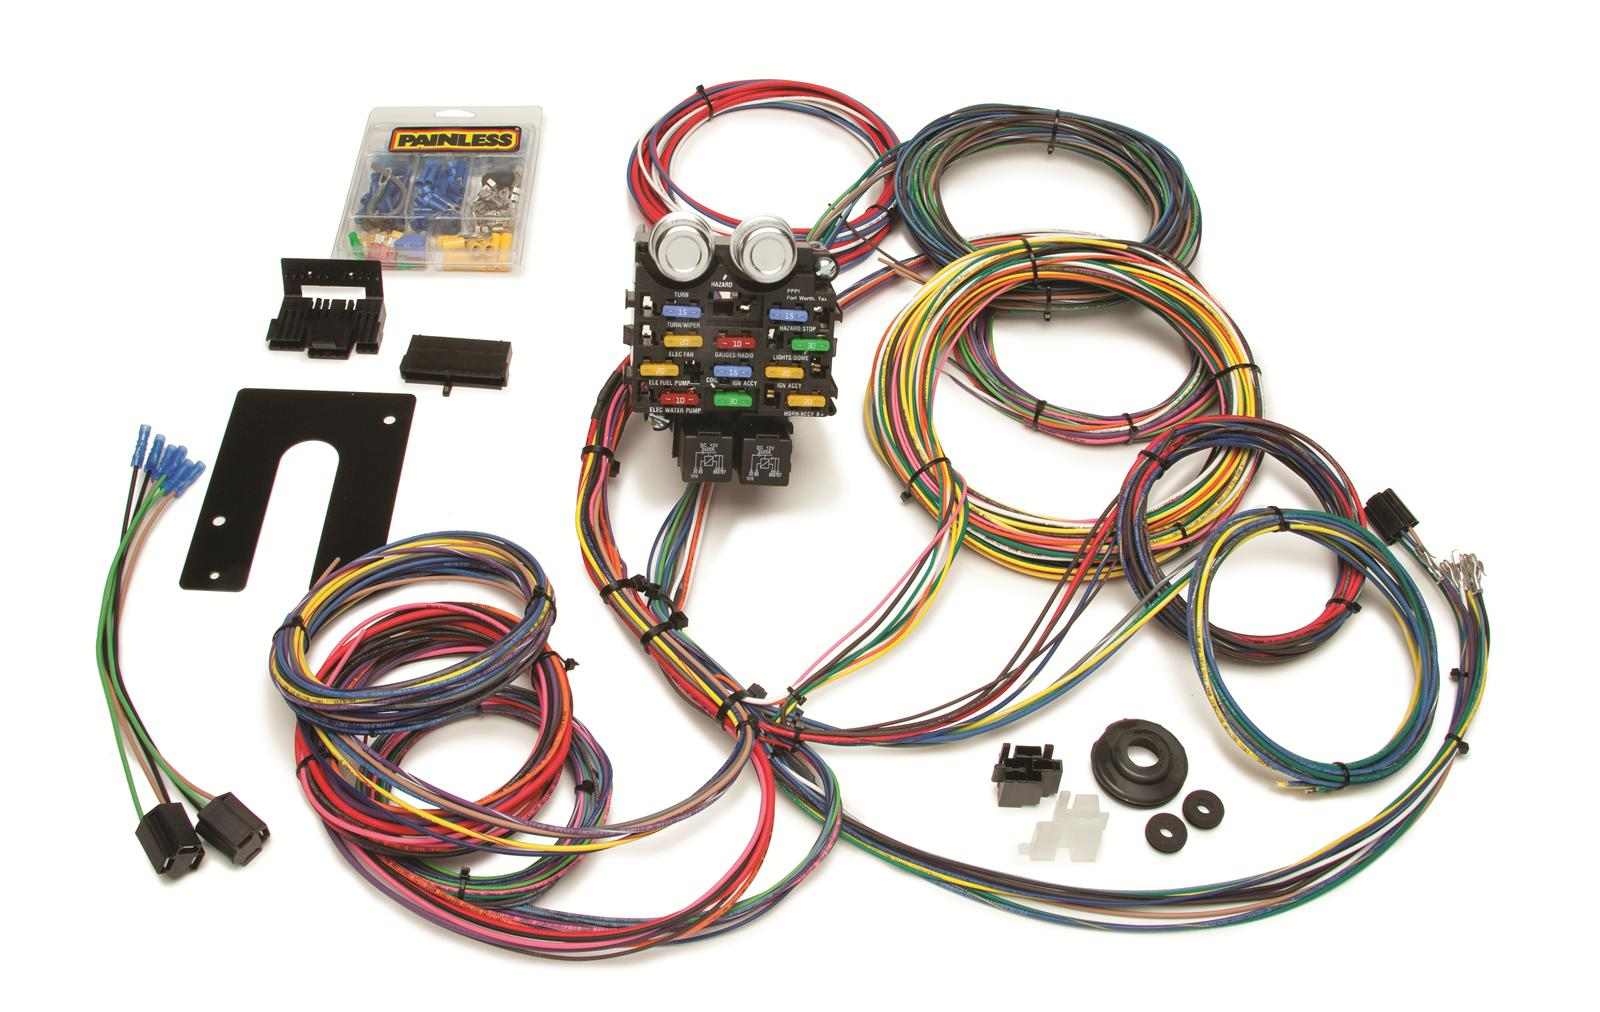 painless performance 21-circuit pro street chassis harnesses 50002 - free  shipping on orders over $99 at summit racing